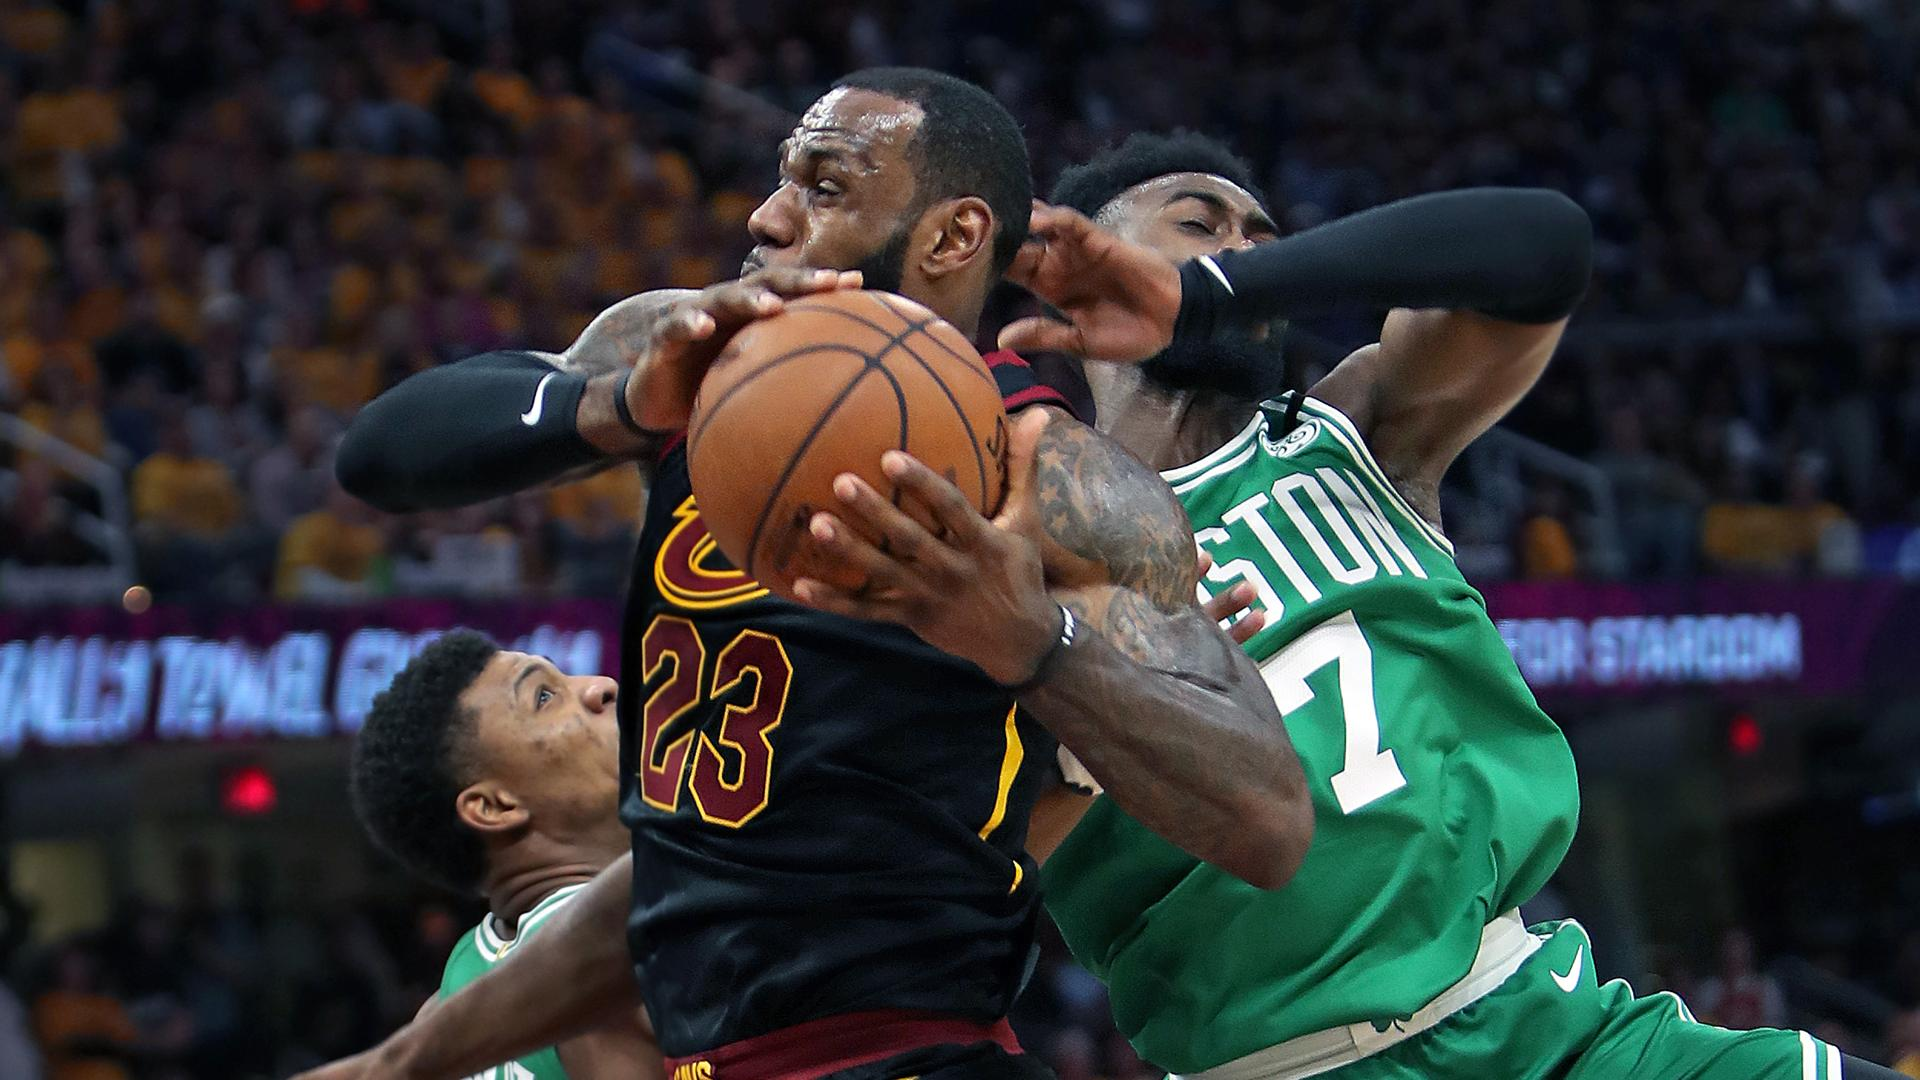 Cavaliers get jump on Celtics in Game 4, tie up Eastern Conference finals (bostonglobe.com)